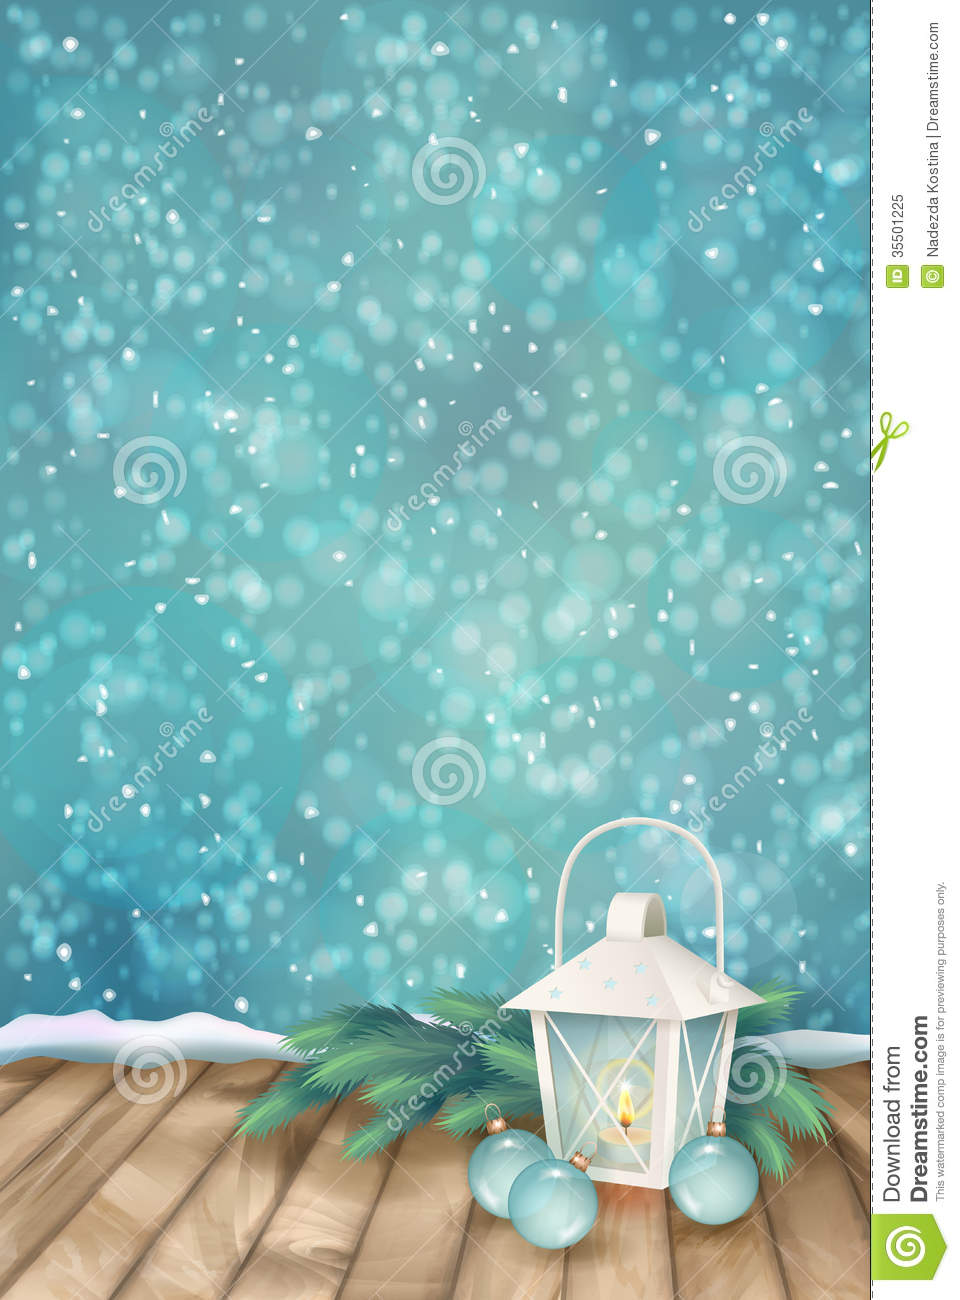 Vector Winter Christmas Scene Background Royalty Free Stock Photo Image 35501225